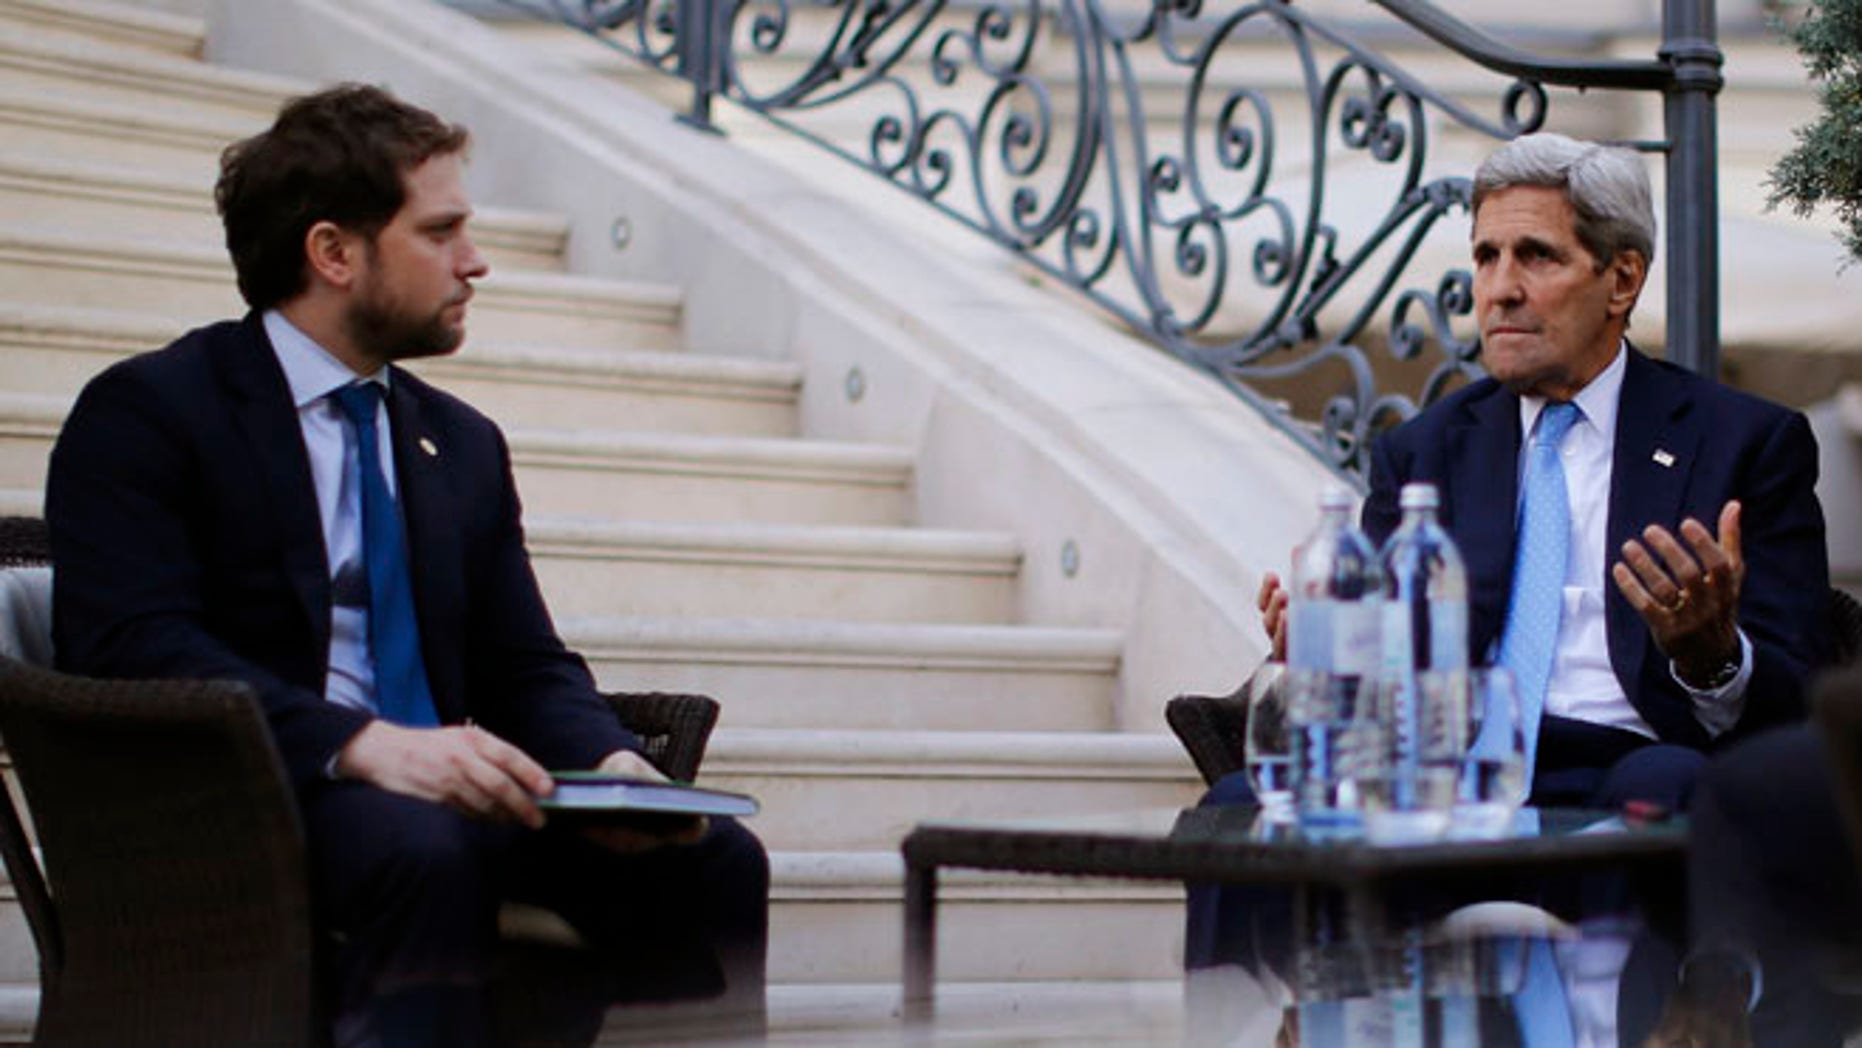 July 10, 2015: Secretary of State John Kerry, right, and State Department Chief of Staff Jon Finer at the Iran nuclear talks, Vienna, Austria.